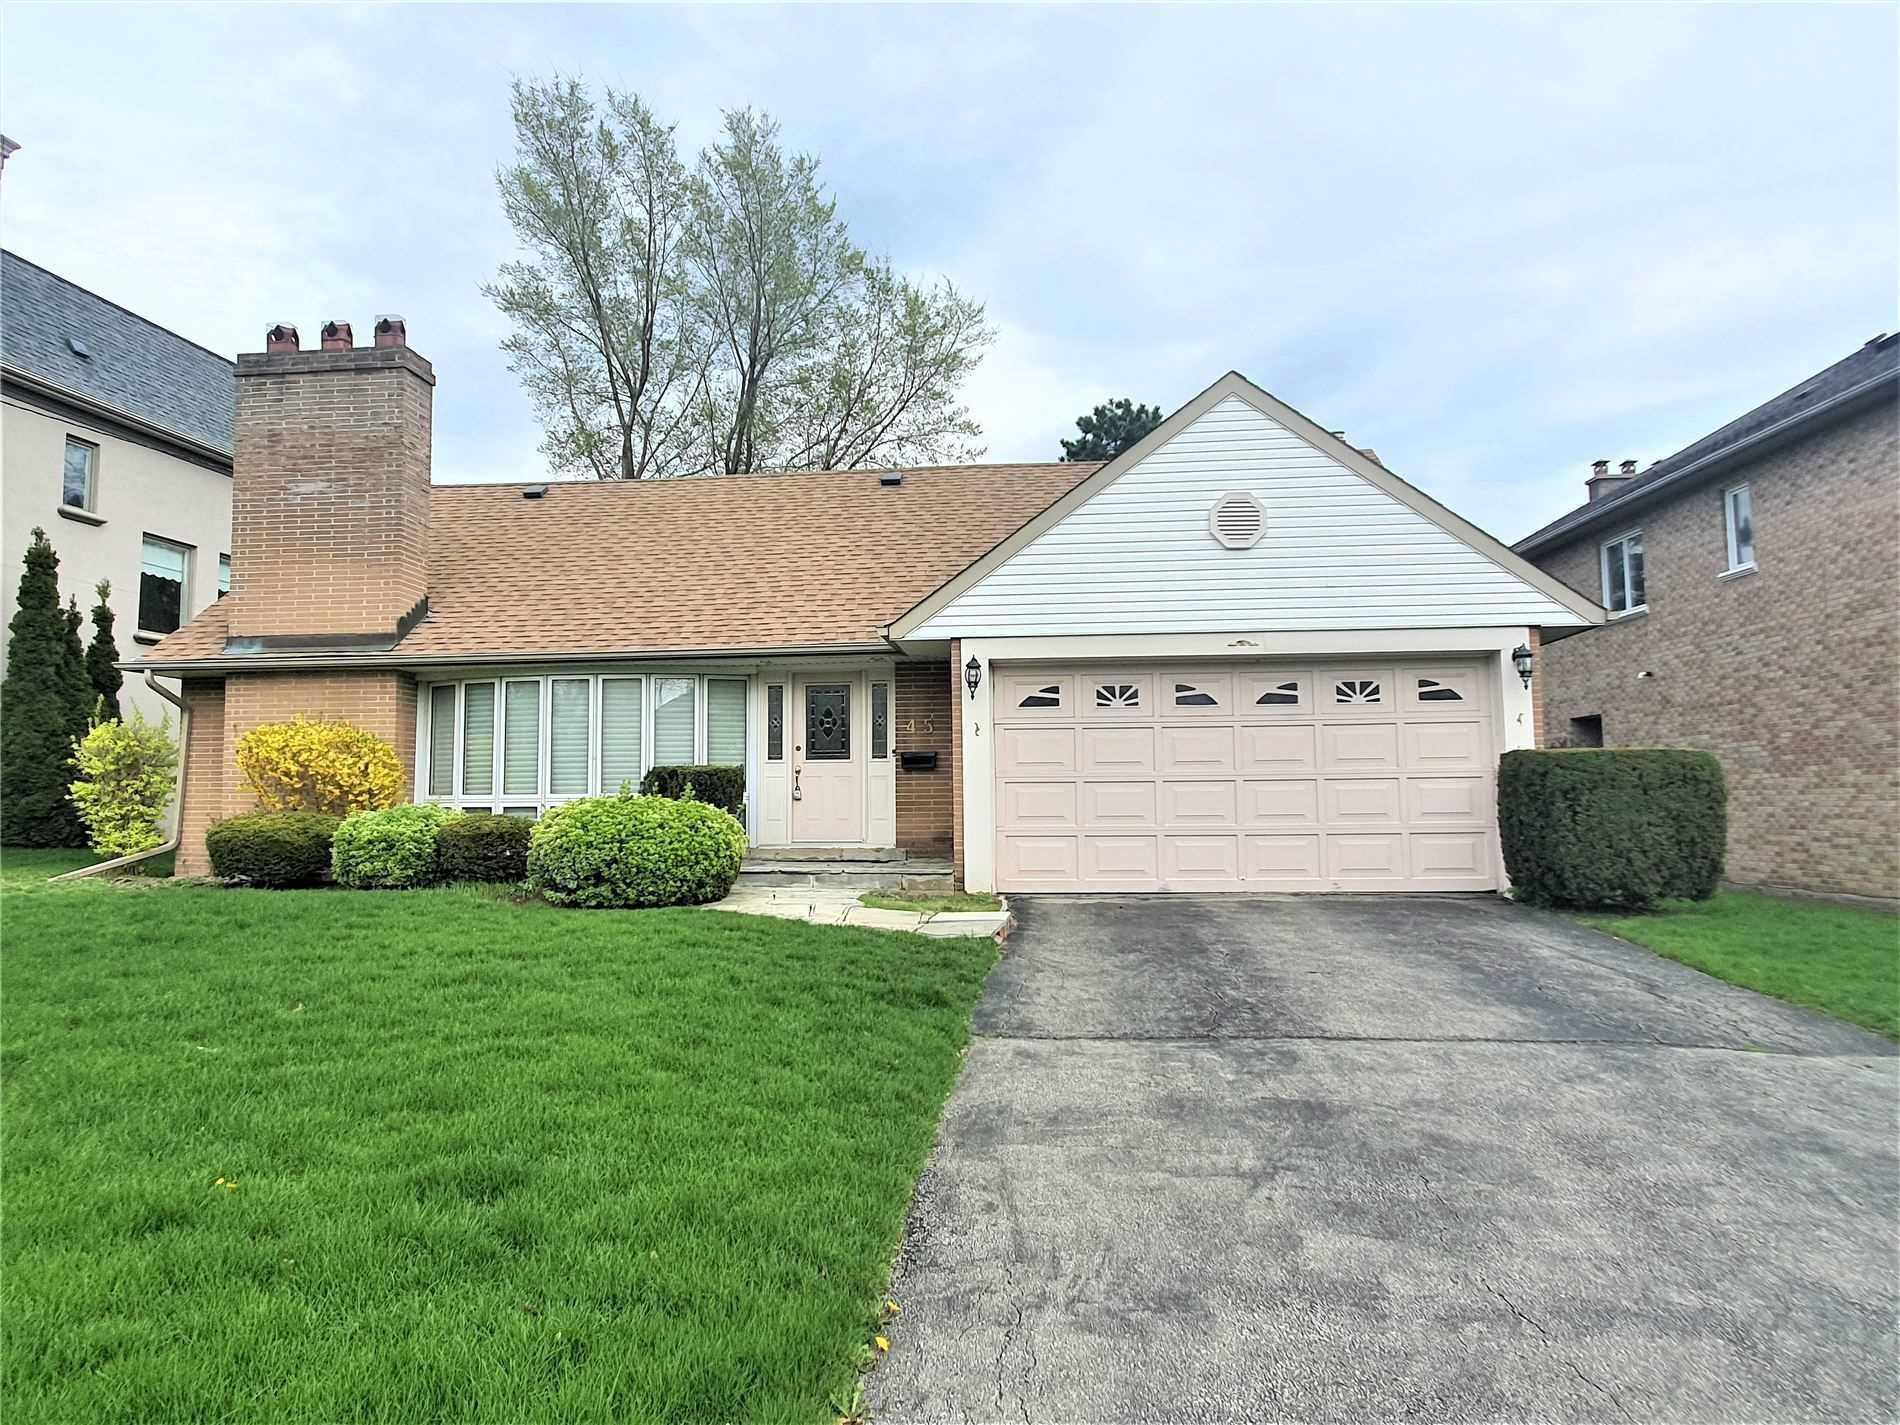 Detached house For Lease In Toronto - 45 Rollscourt Dr, Toronto, Ontario, Canada M2L1X6 , 3 Bedrooms Bedrooms, ,3 BathroomsBathrooms,Detached,For Lease,Rollscourt